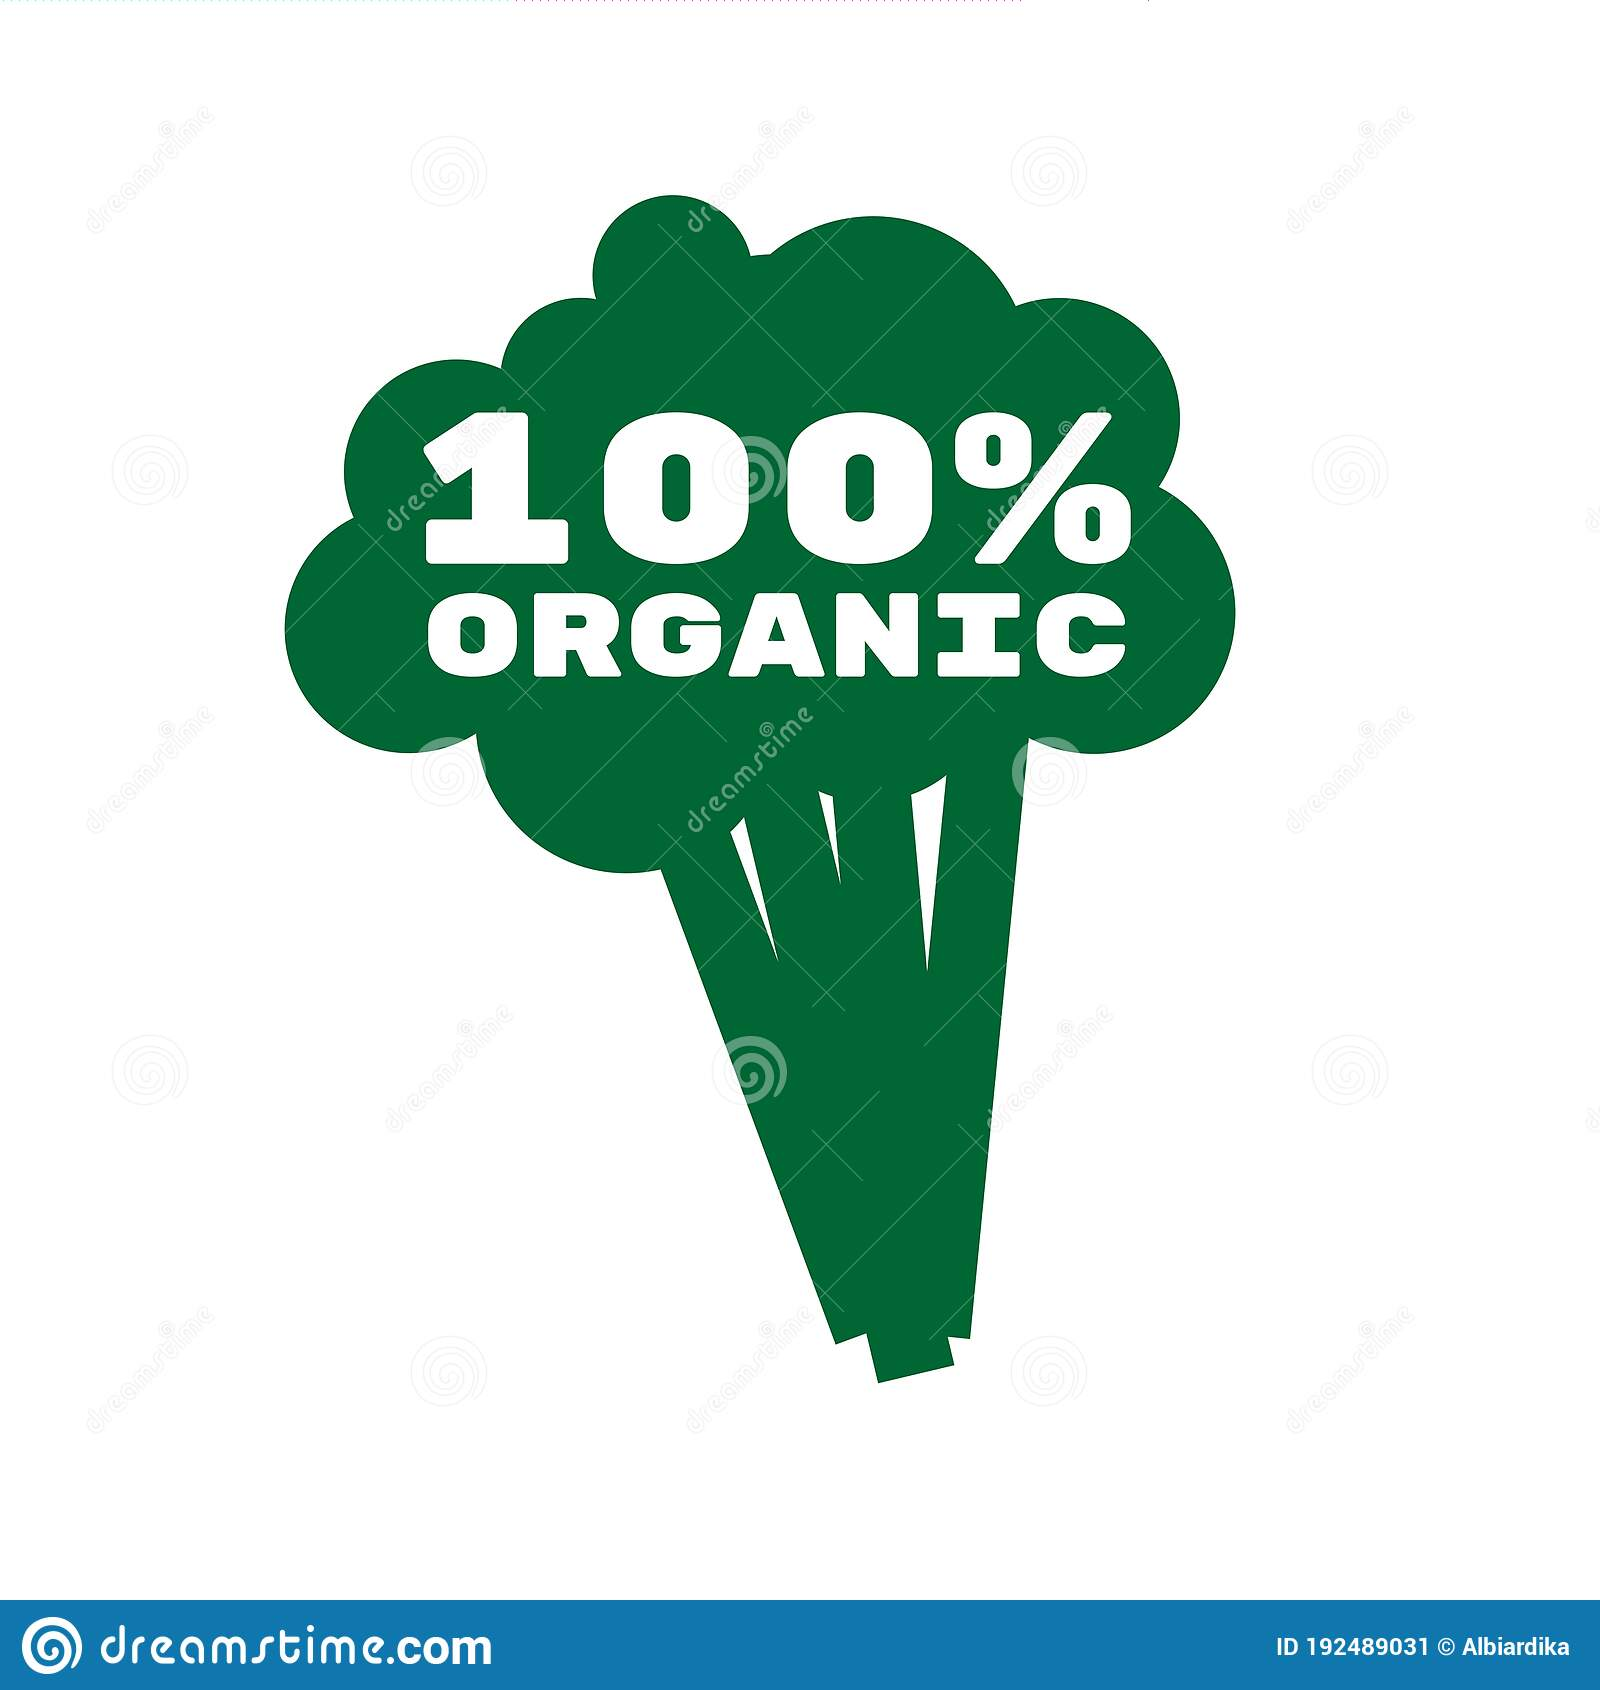 vector illustration green broccoli vegetable organic product food tag sticker label flat design cartoon style stock vector illustration of abstract design 192489031 vector illustration green broccoli vegetable organic product food tag sticker label flat design cartoon style stock vector illustration of abstract design 192489031